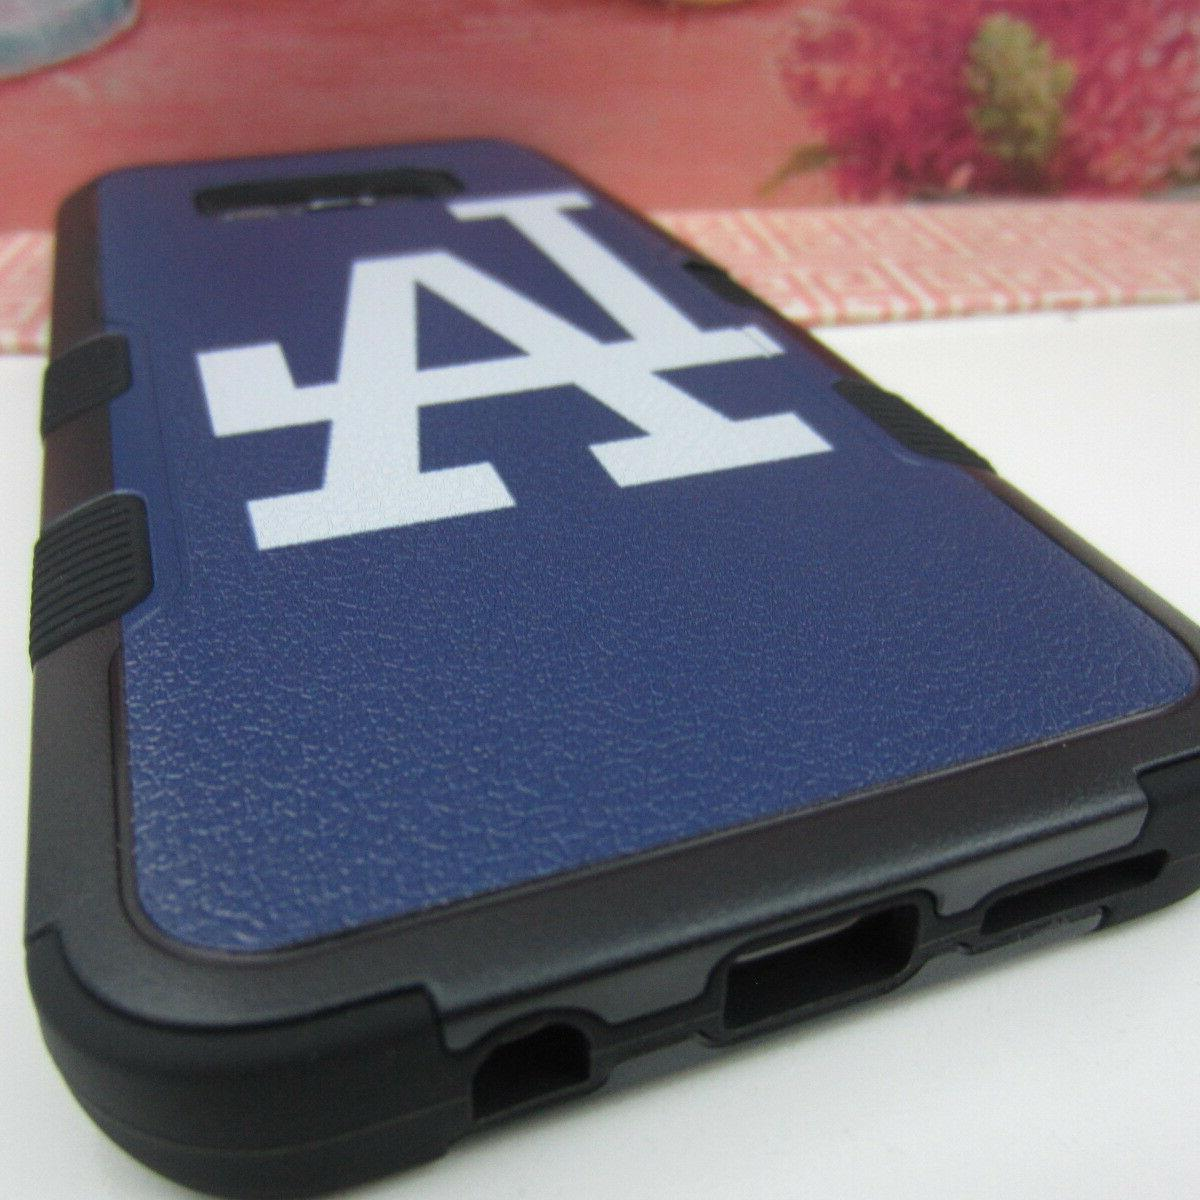 los angeles la dodgers rugged impact armor